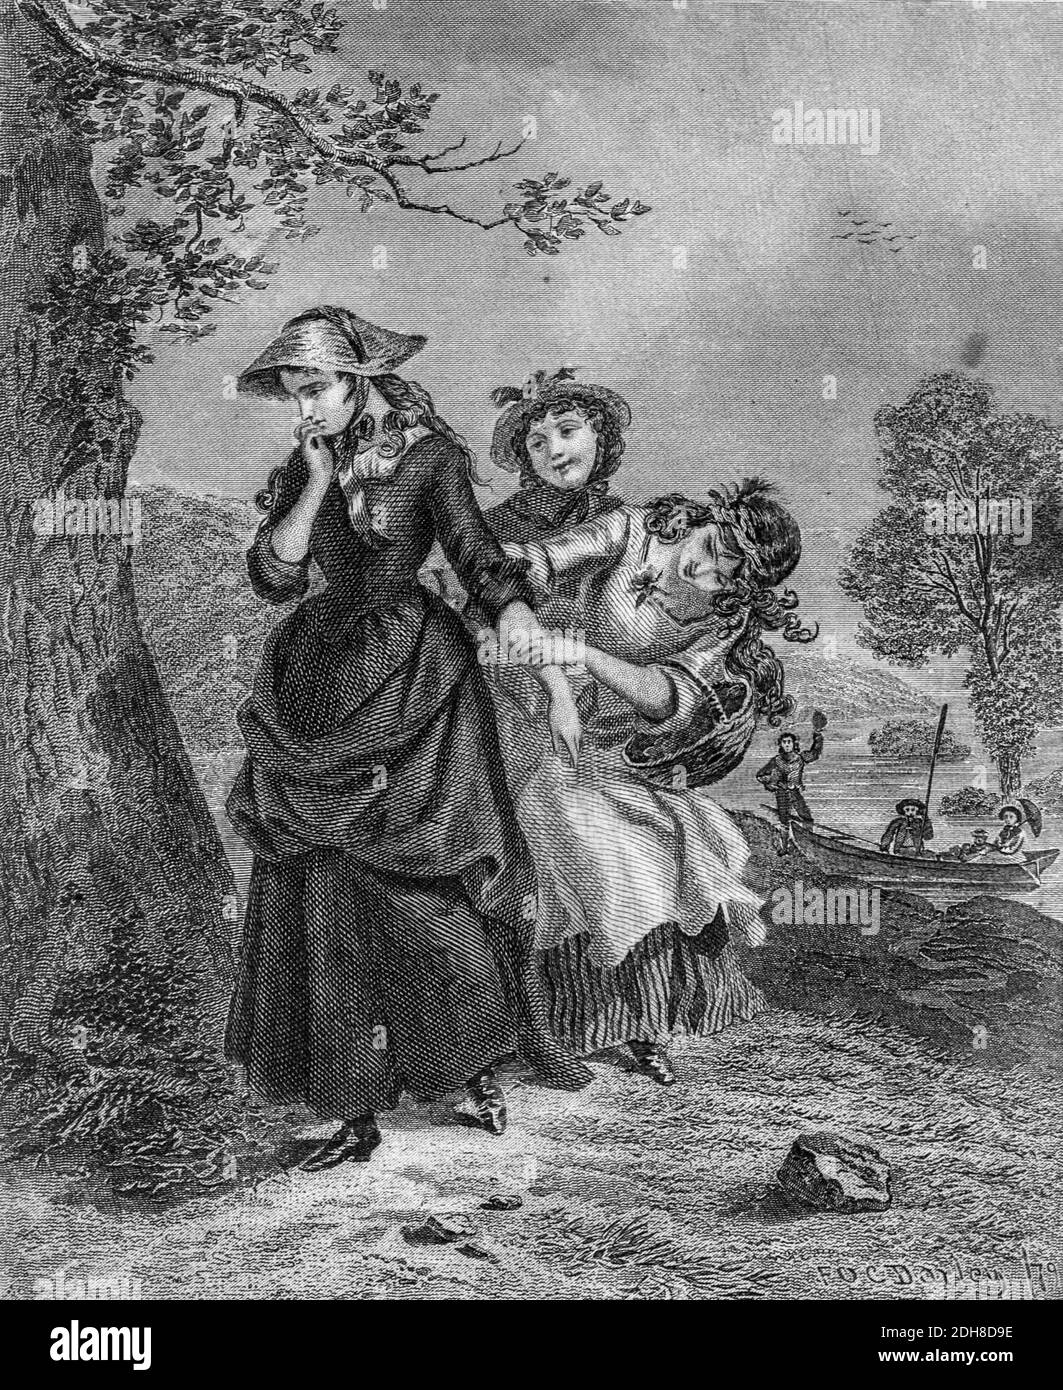 Girls play outdoors Artwork from Godey's Lady's Book and Magazine, 1880, Published in Philadelphia, USA by Louis A. Godey, Sarah Josepha Hale, Stock Photo